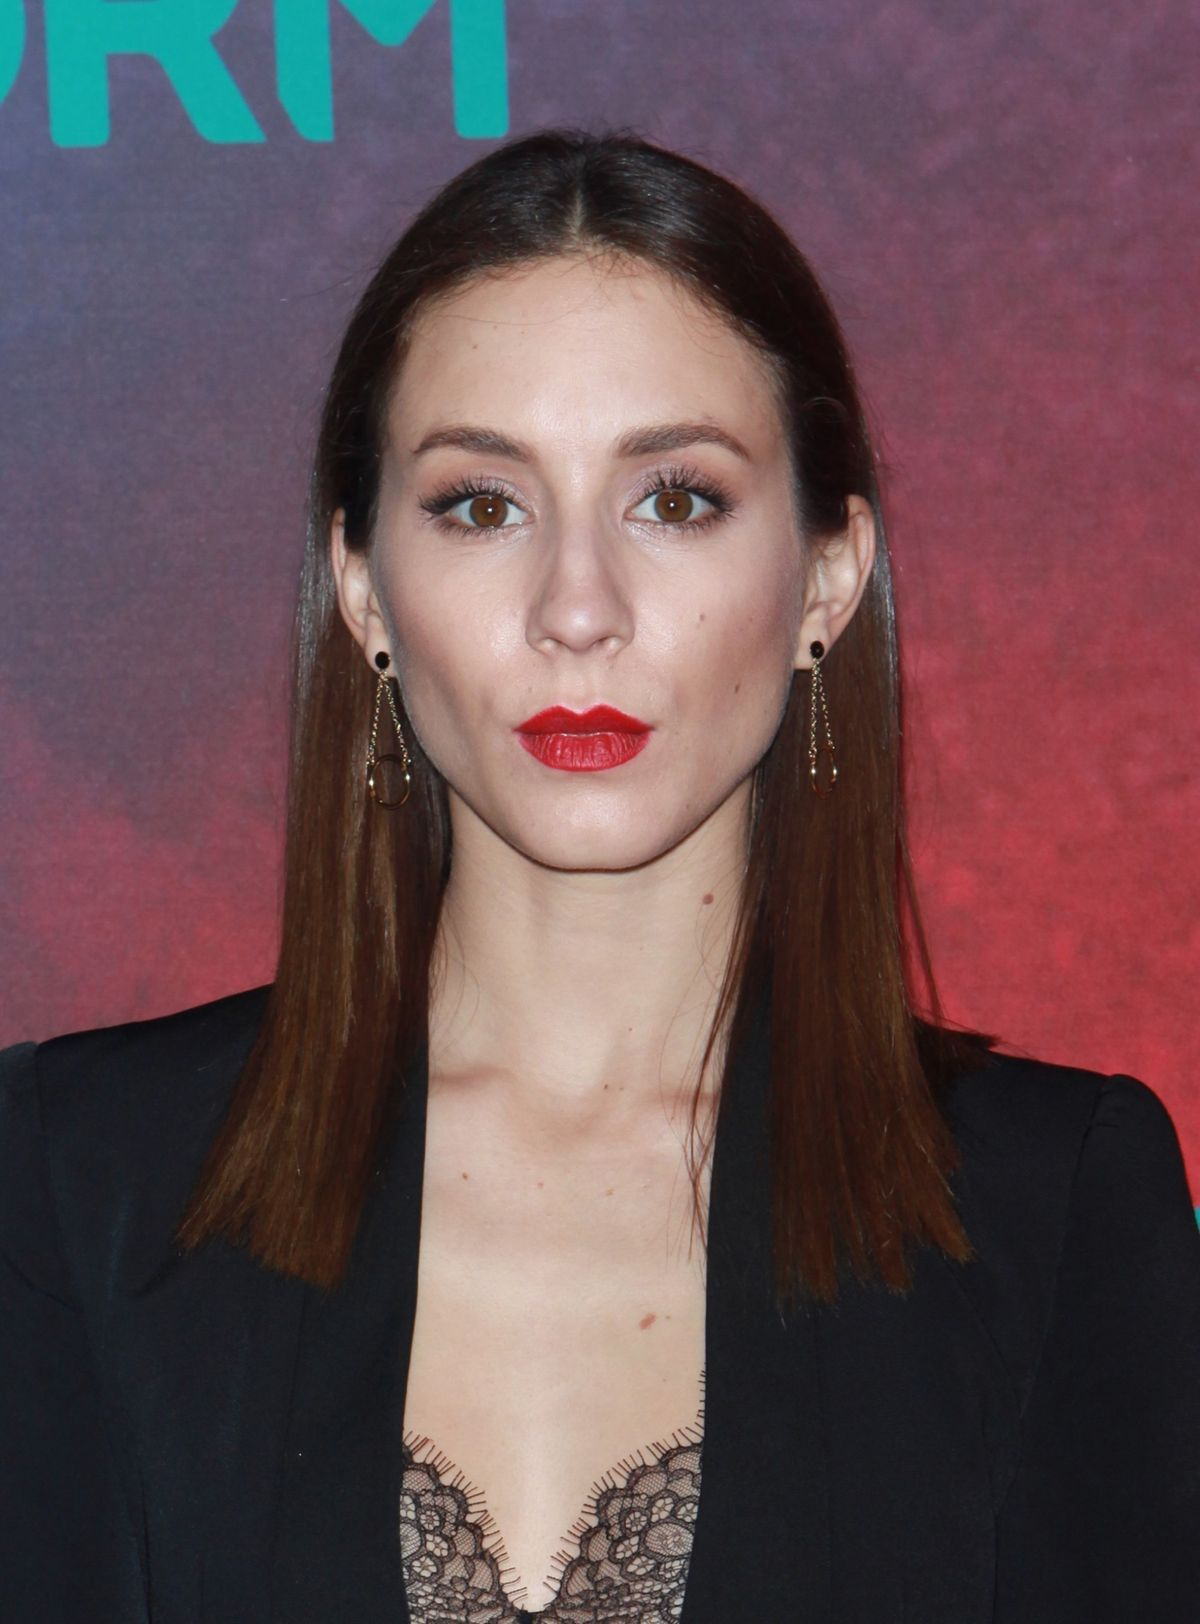 Troian Bellisario At 2017 Freeform Upfront in NYC   troian-bellisario-at-2017-freeform-upfront-in-nyc_6